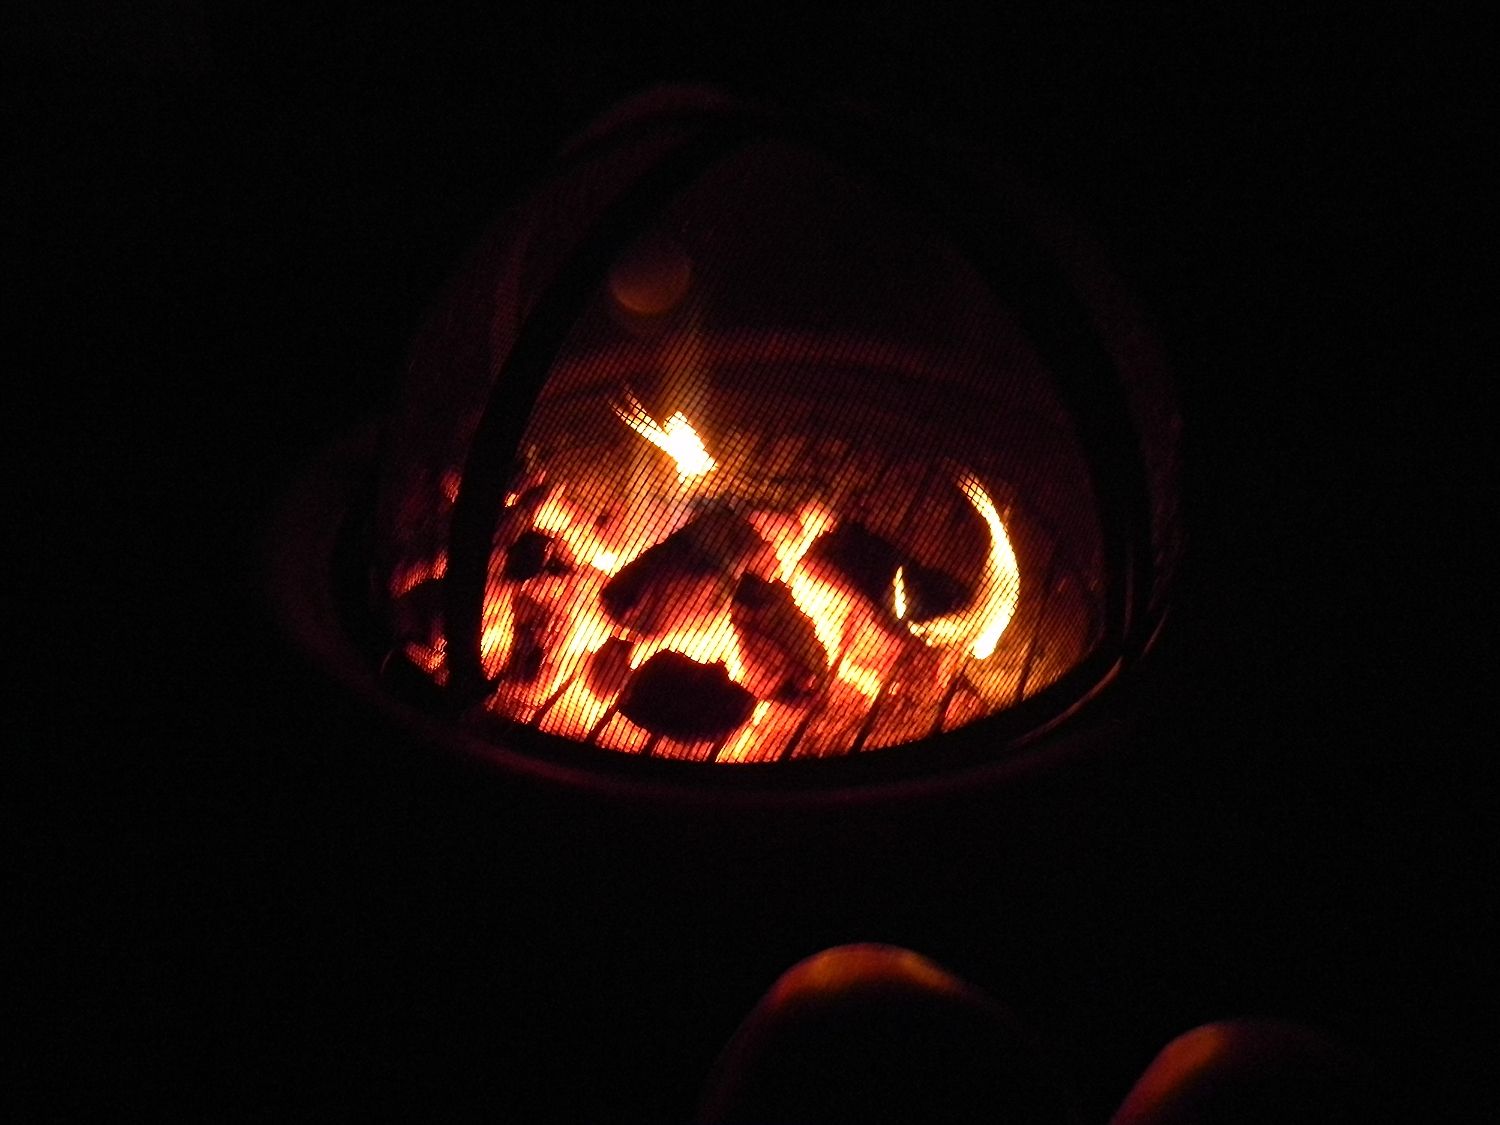 One of our many back yard bonfires with dear friends who are willing to look into the flames along side us.